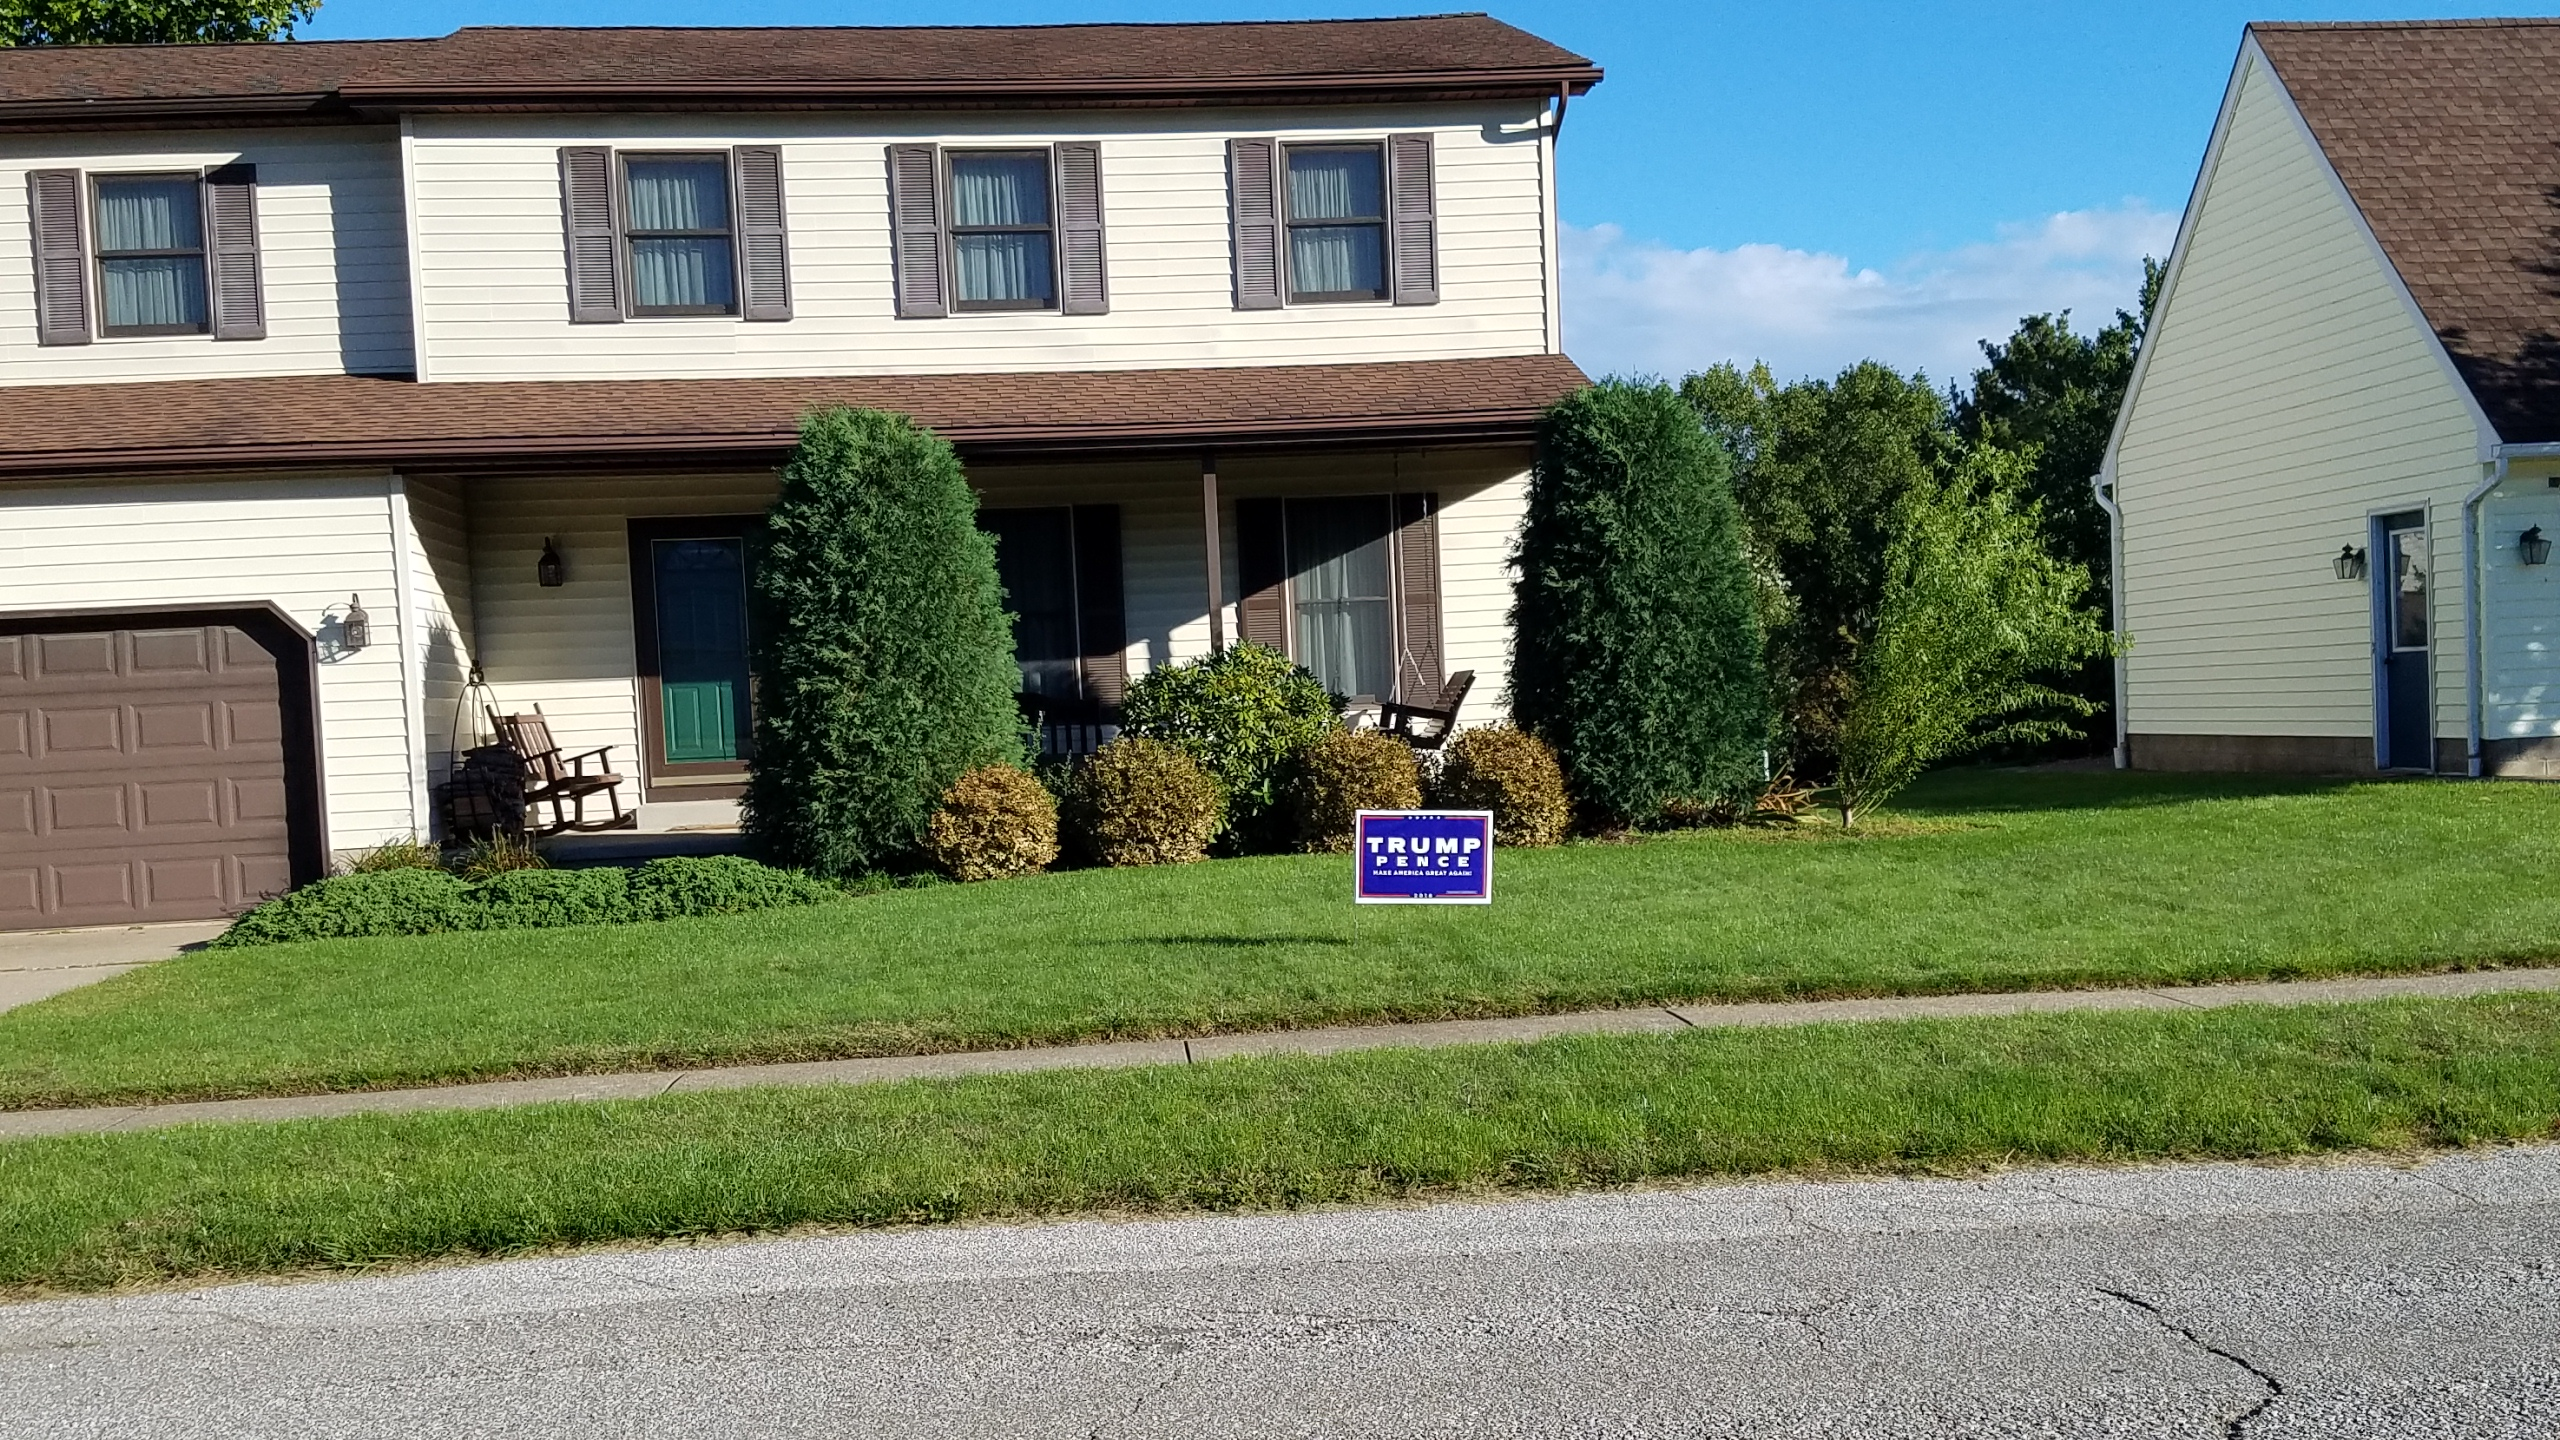 Trump_Small_Sign_100716